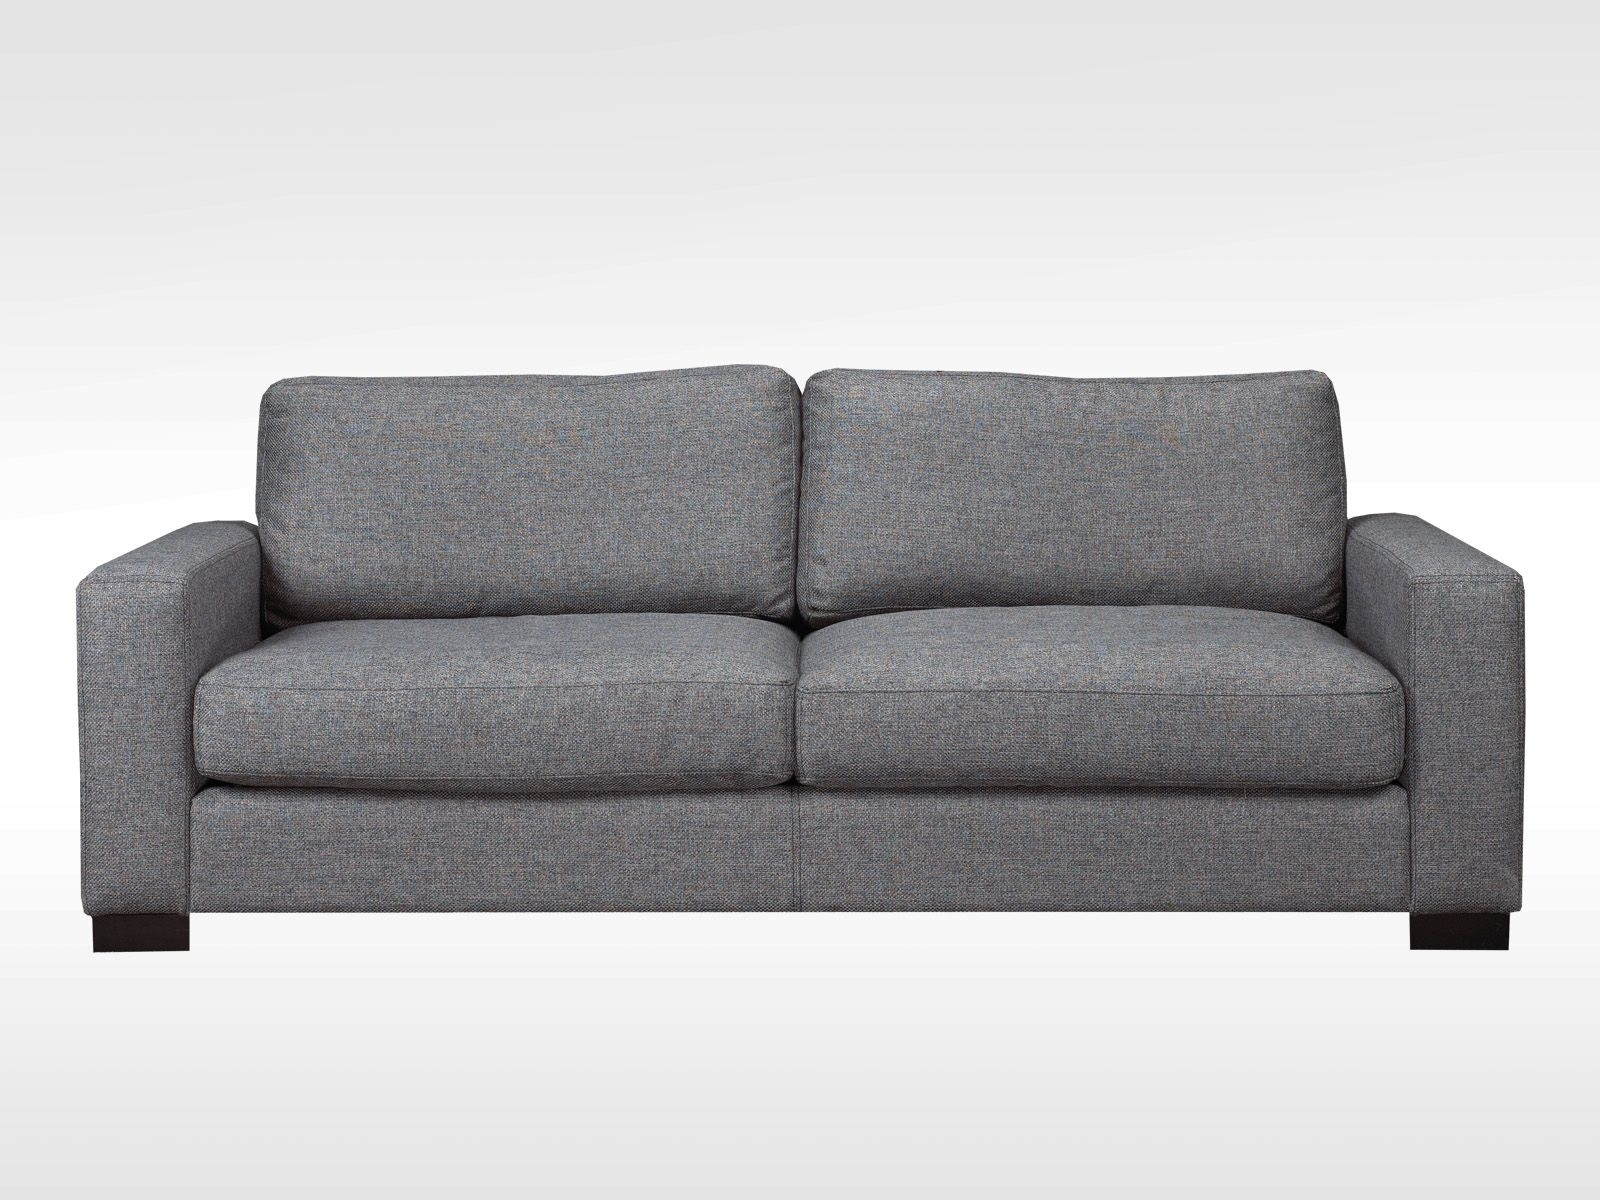 Mensa | Brentwood Classics At Chattels Furniture & Home Decor throughout Kitchener Sectional Sofas (Image 9 of 10)